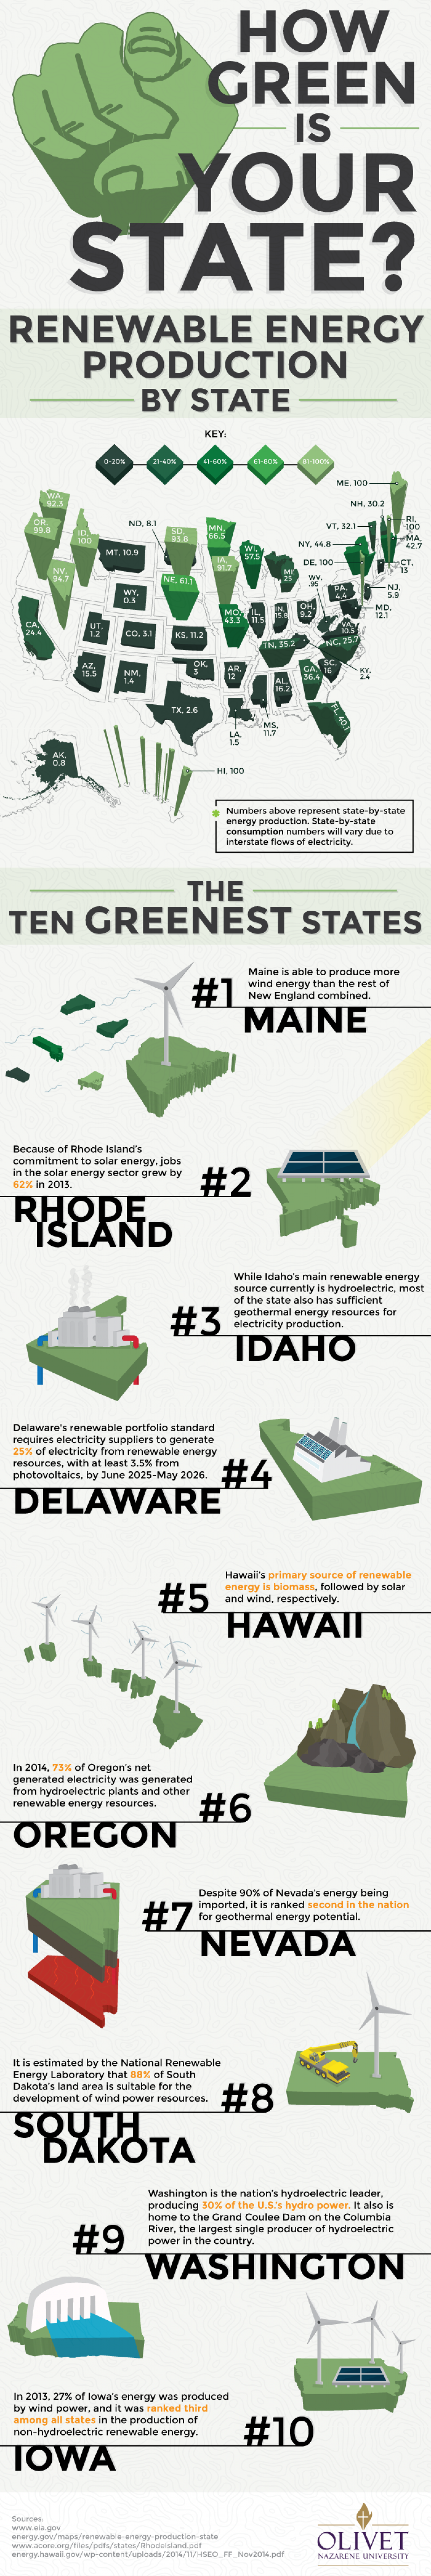 Renewable Energy Production By State Infographic